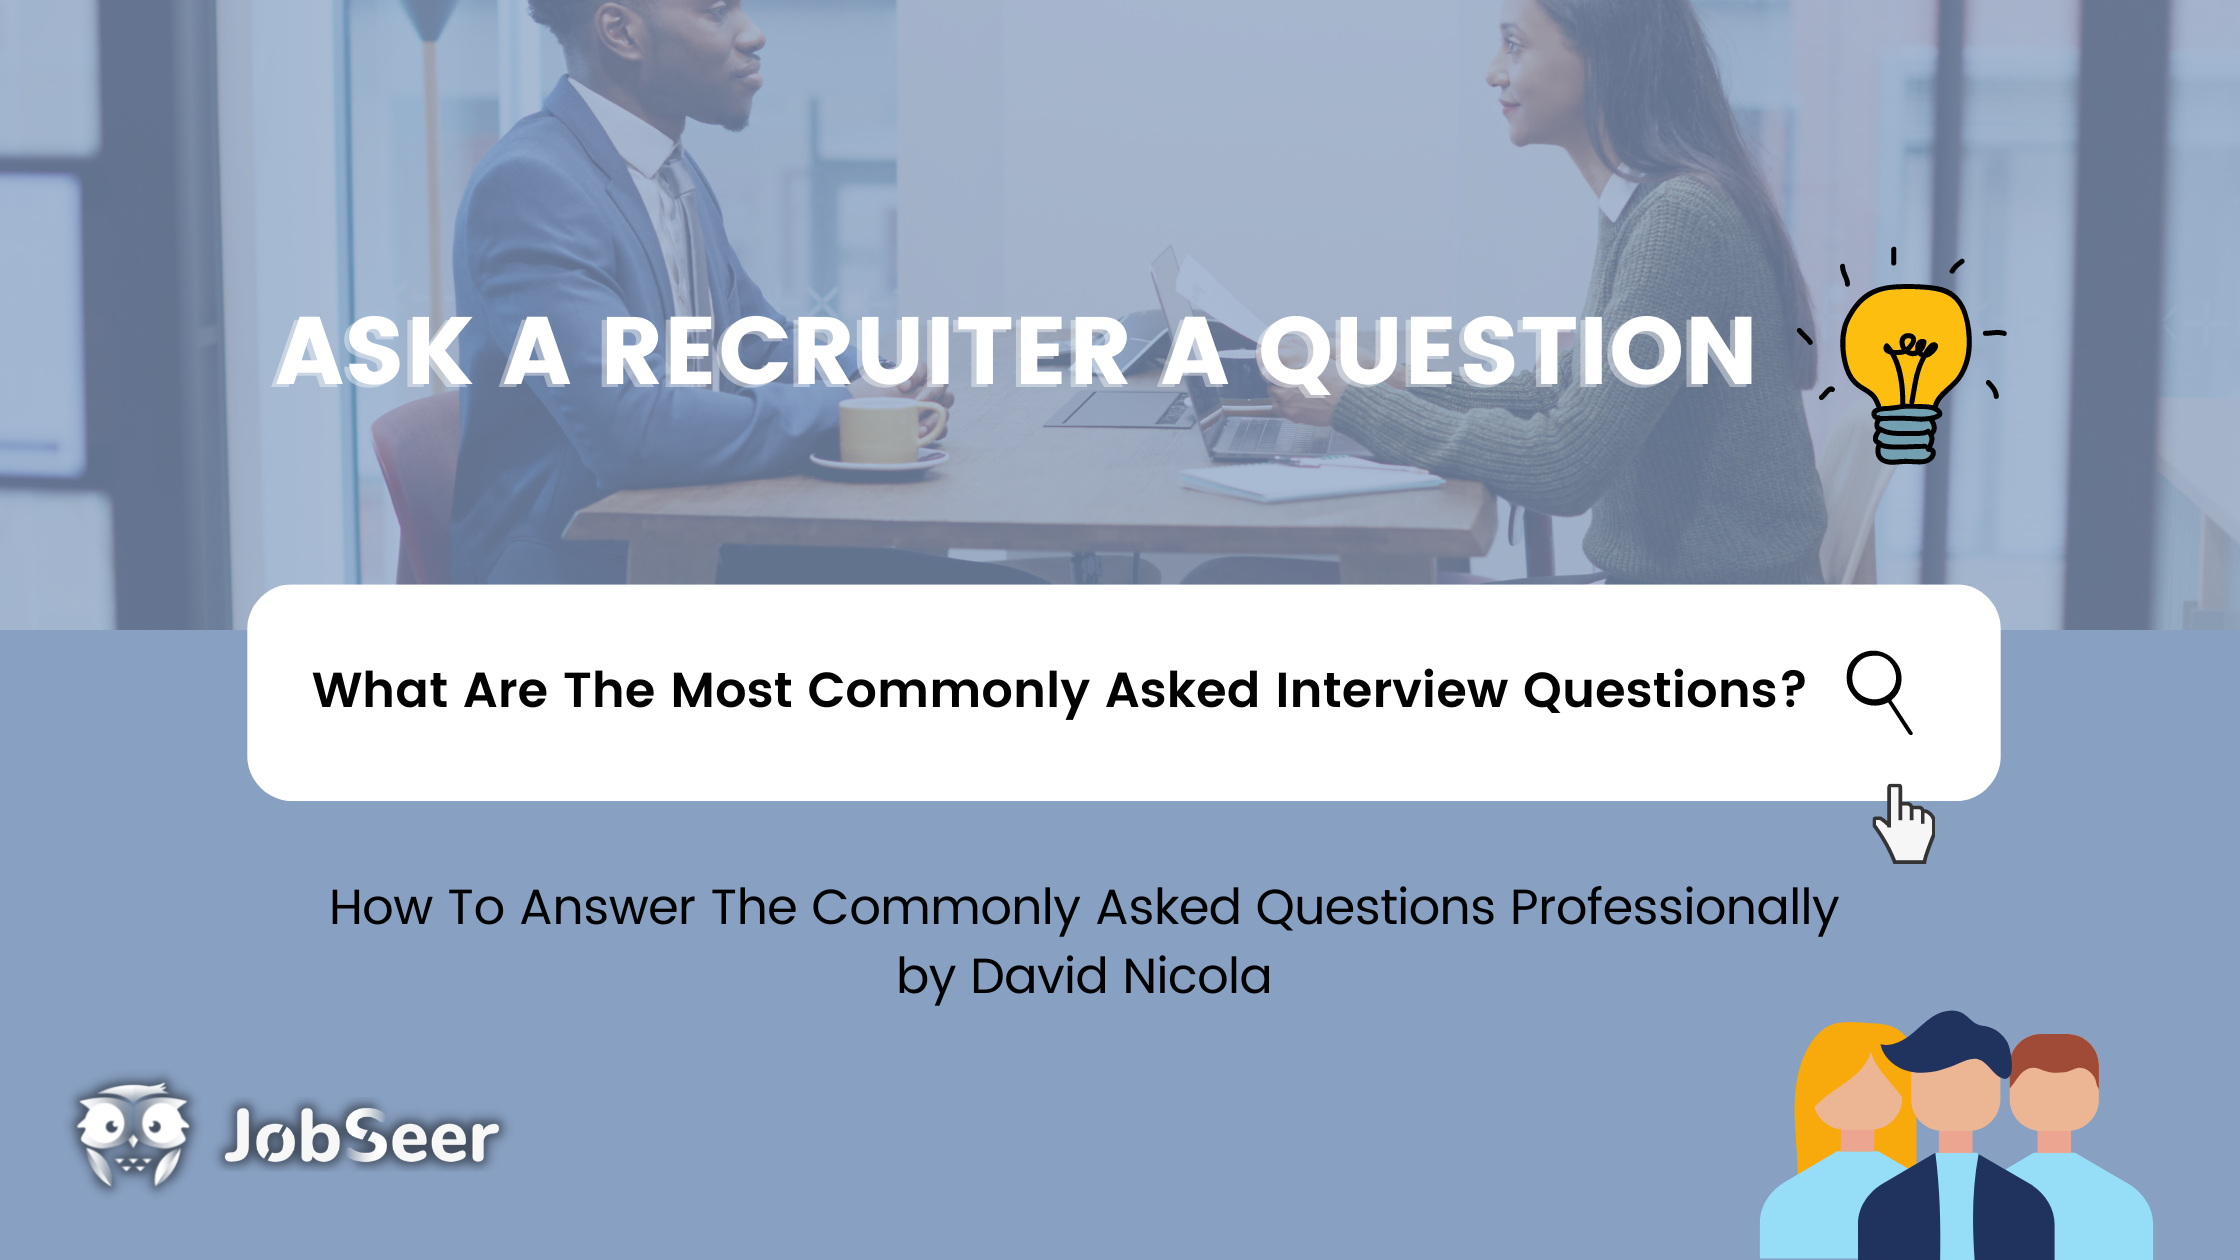 What Are The Most Commonly Asked Interview Questions?